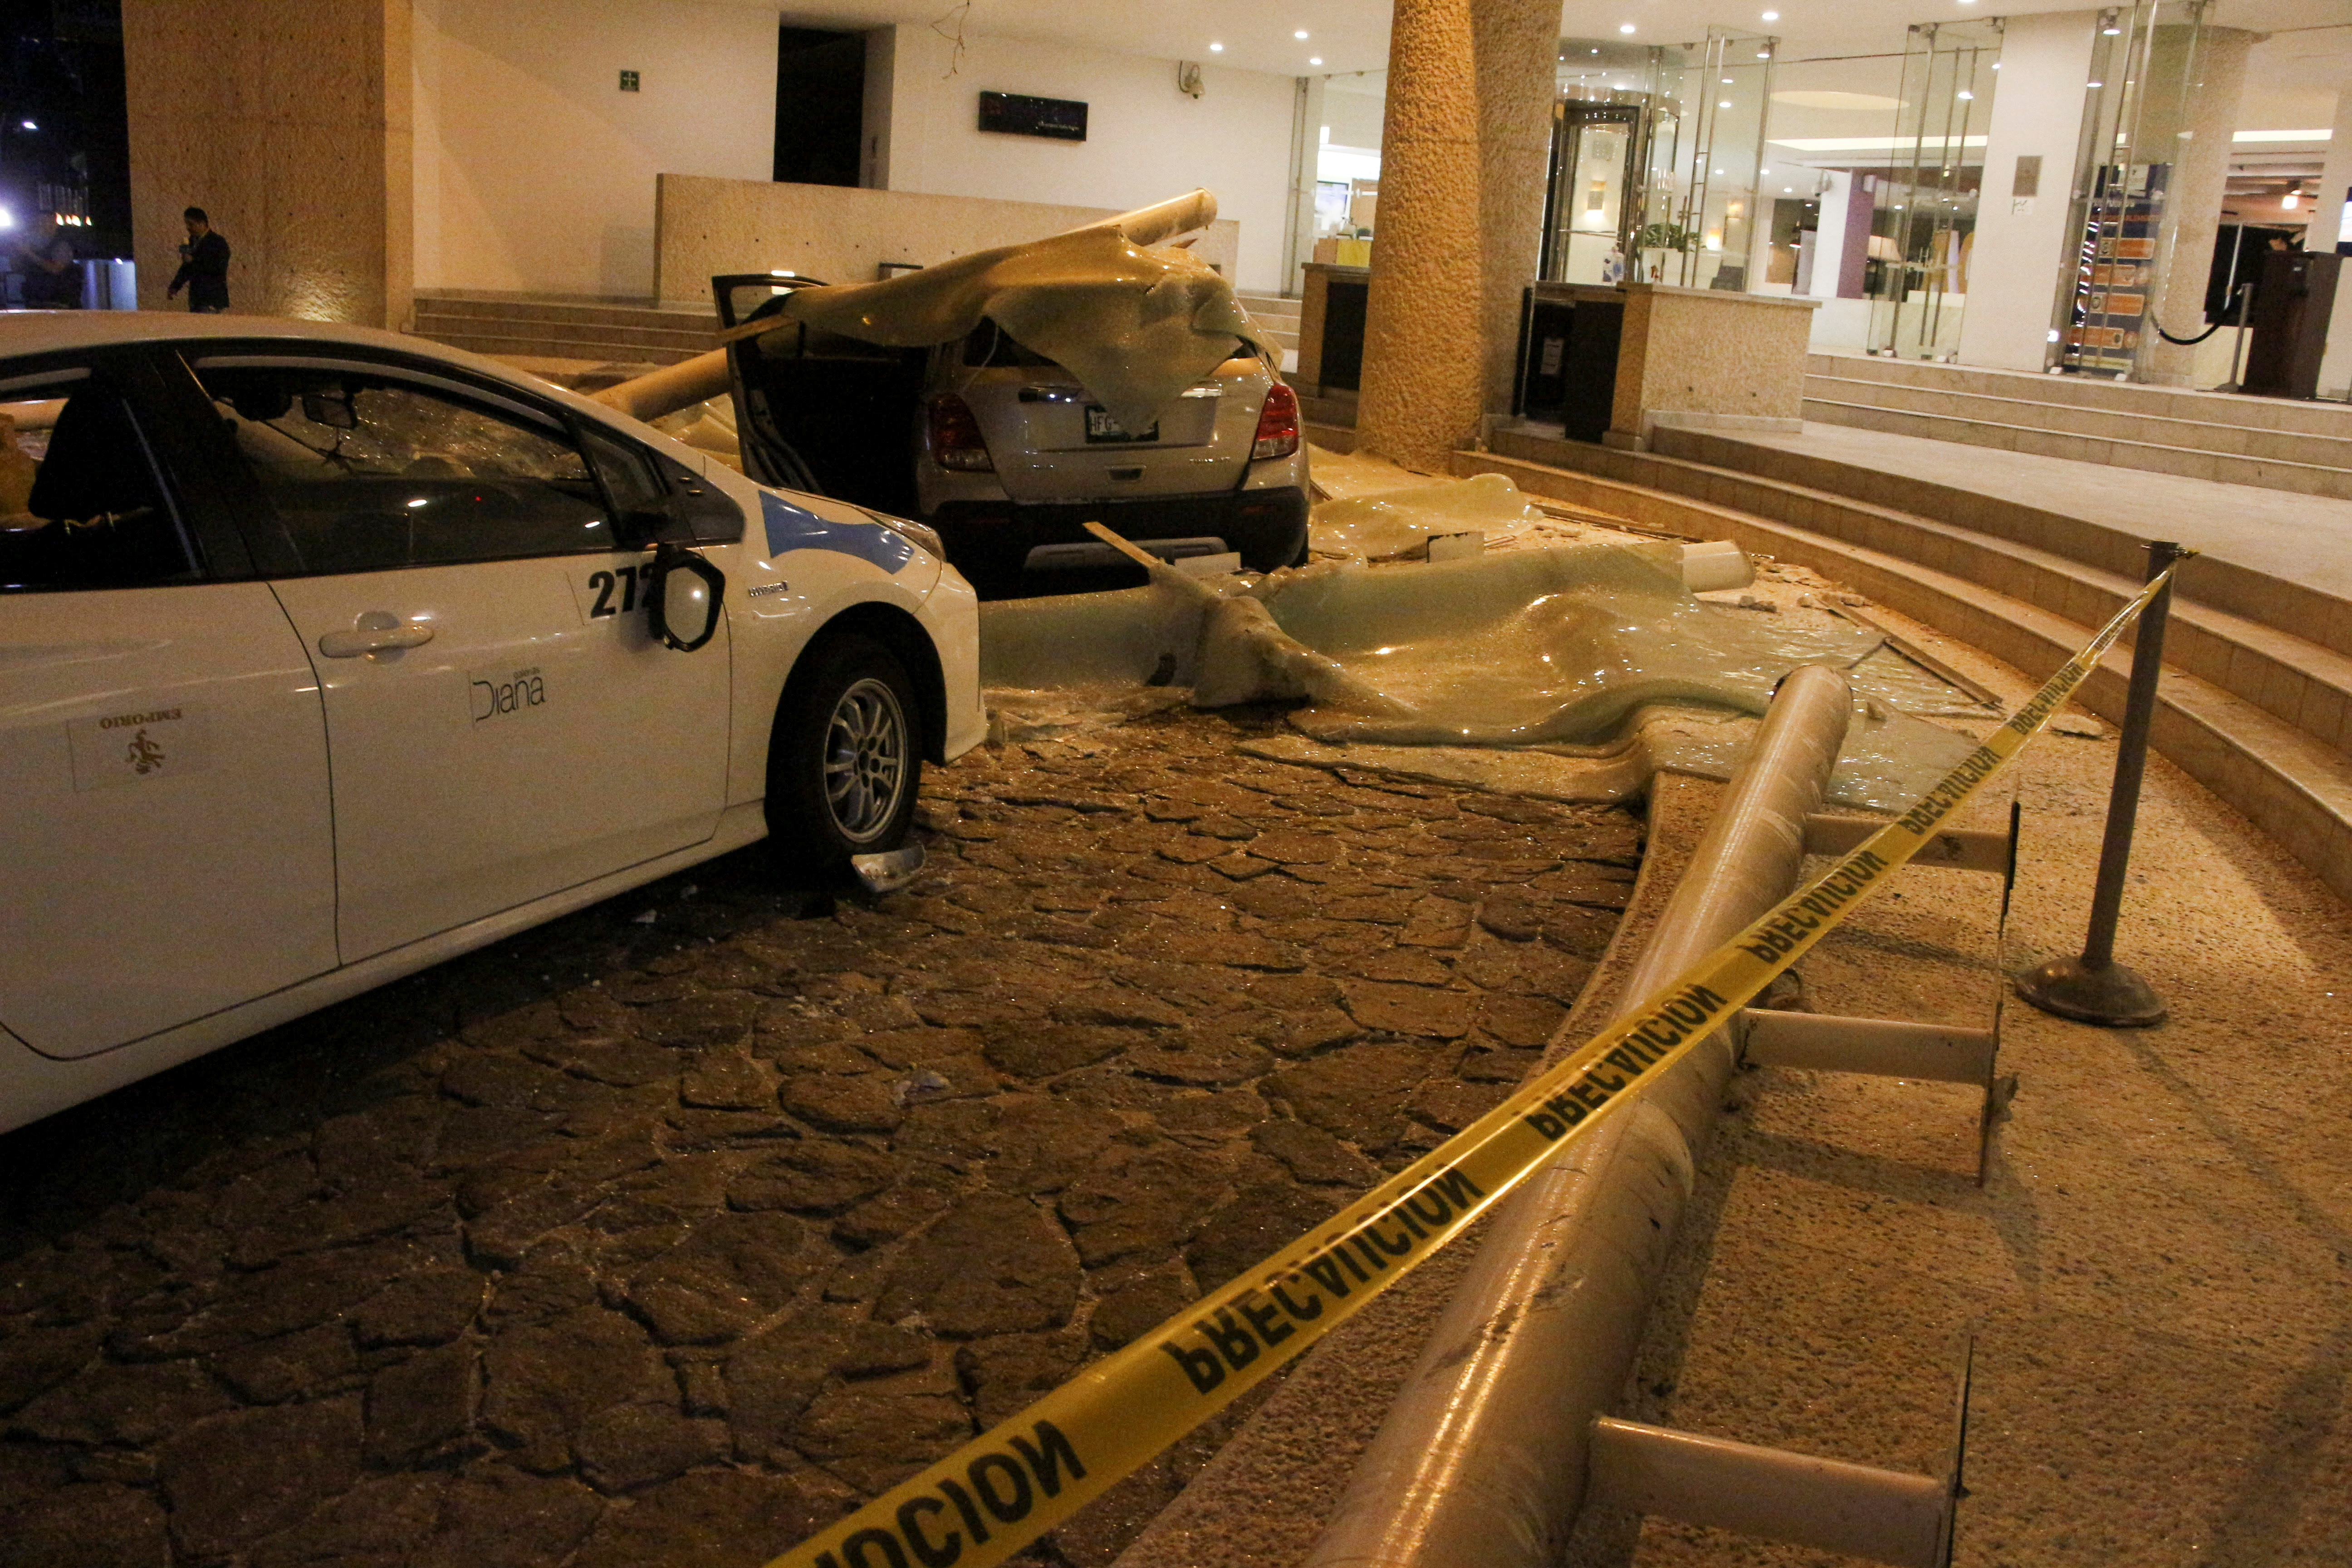 Cars damaged during a quake are pictured at the Hotel Emporio in Acapulco, Mexico September 7, 2021.  REUTERS/Stringer